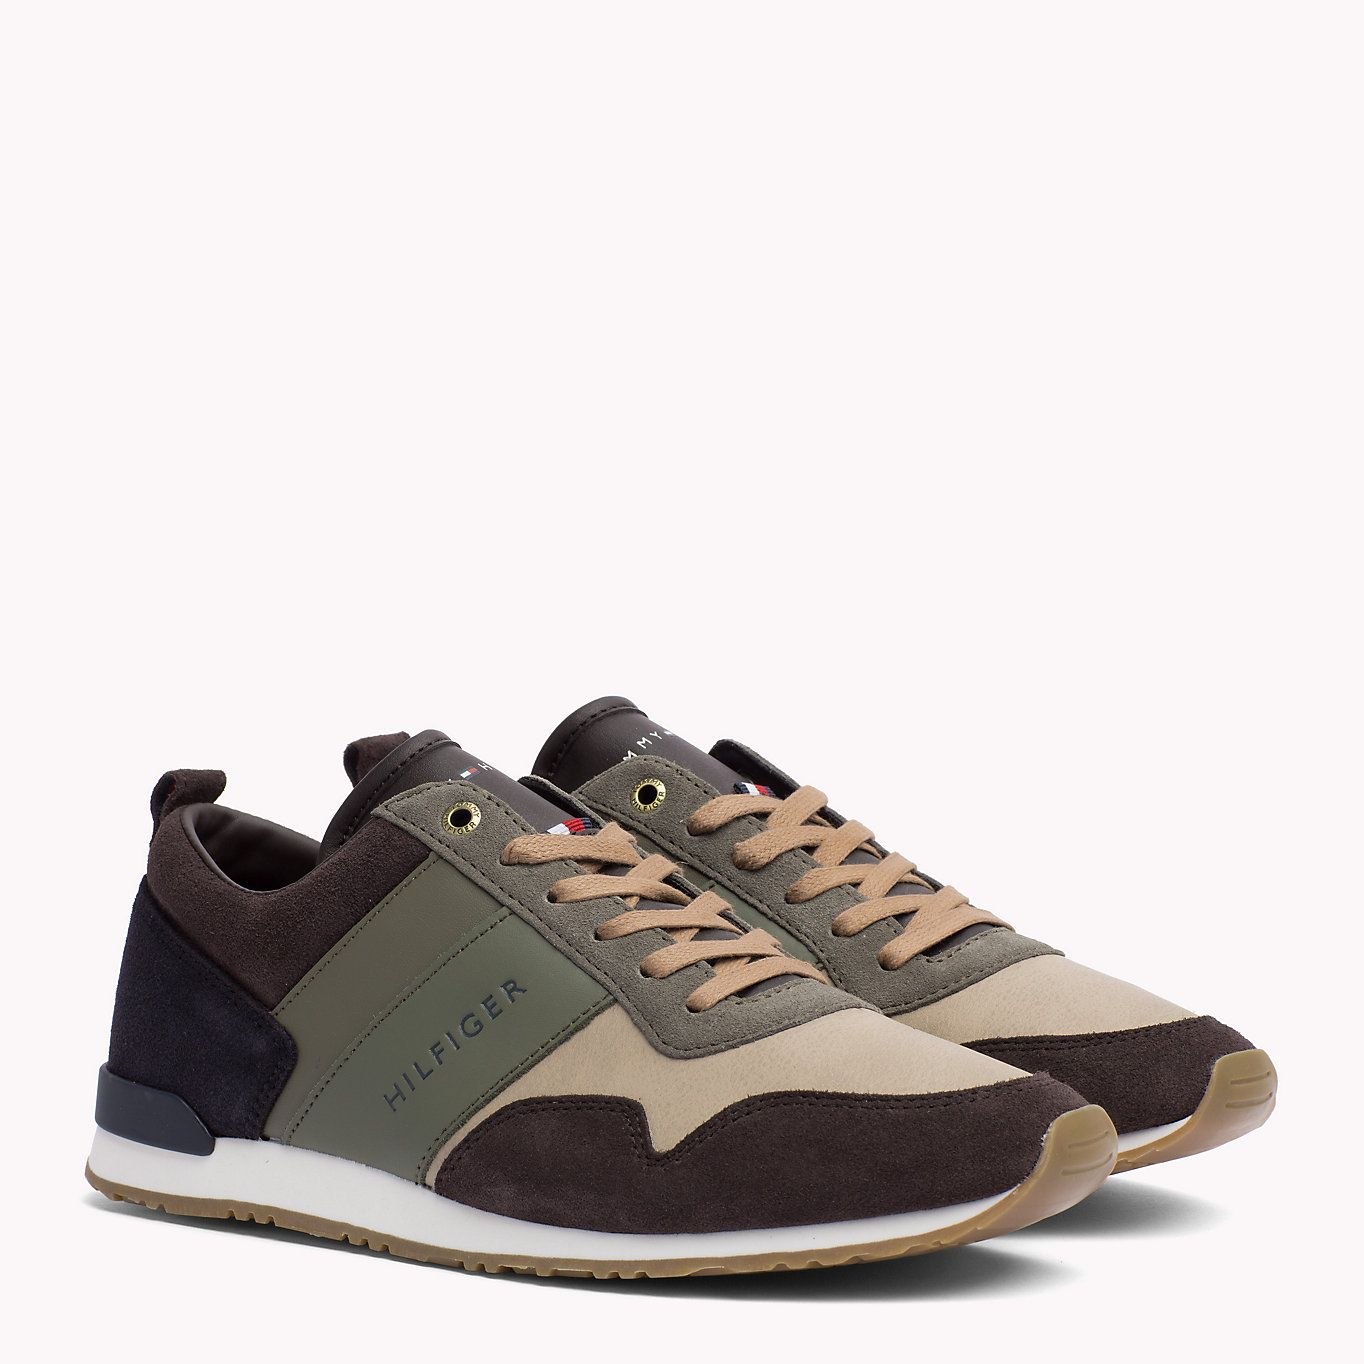 4244c5027077 Image for Zapatillas color block from TommyES mejores que los new balance